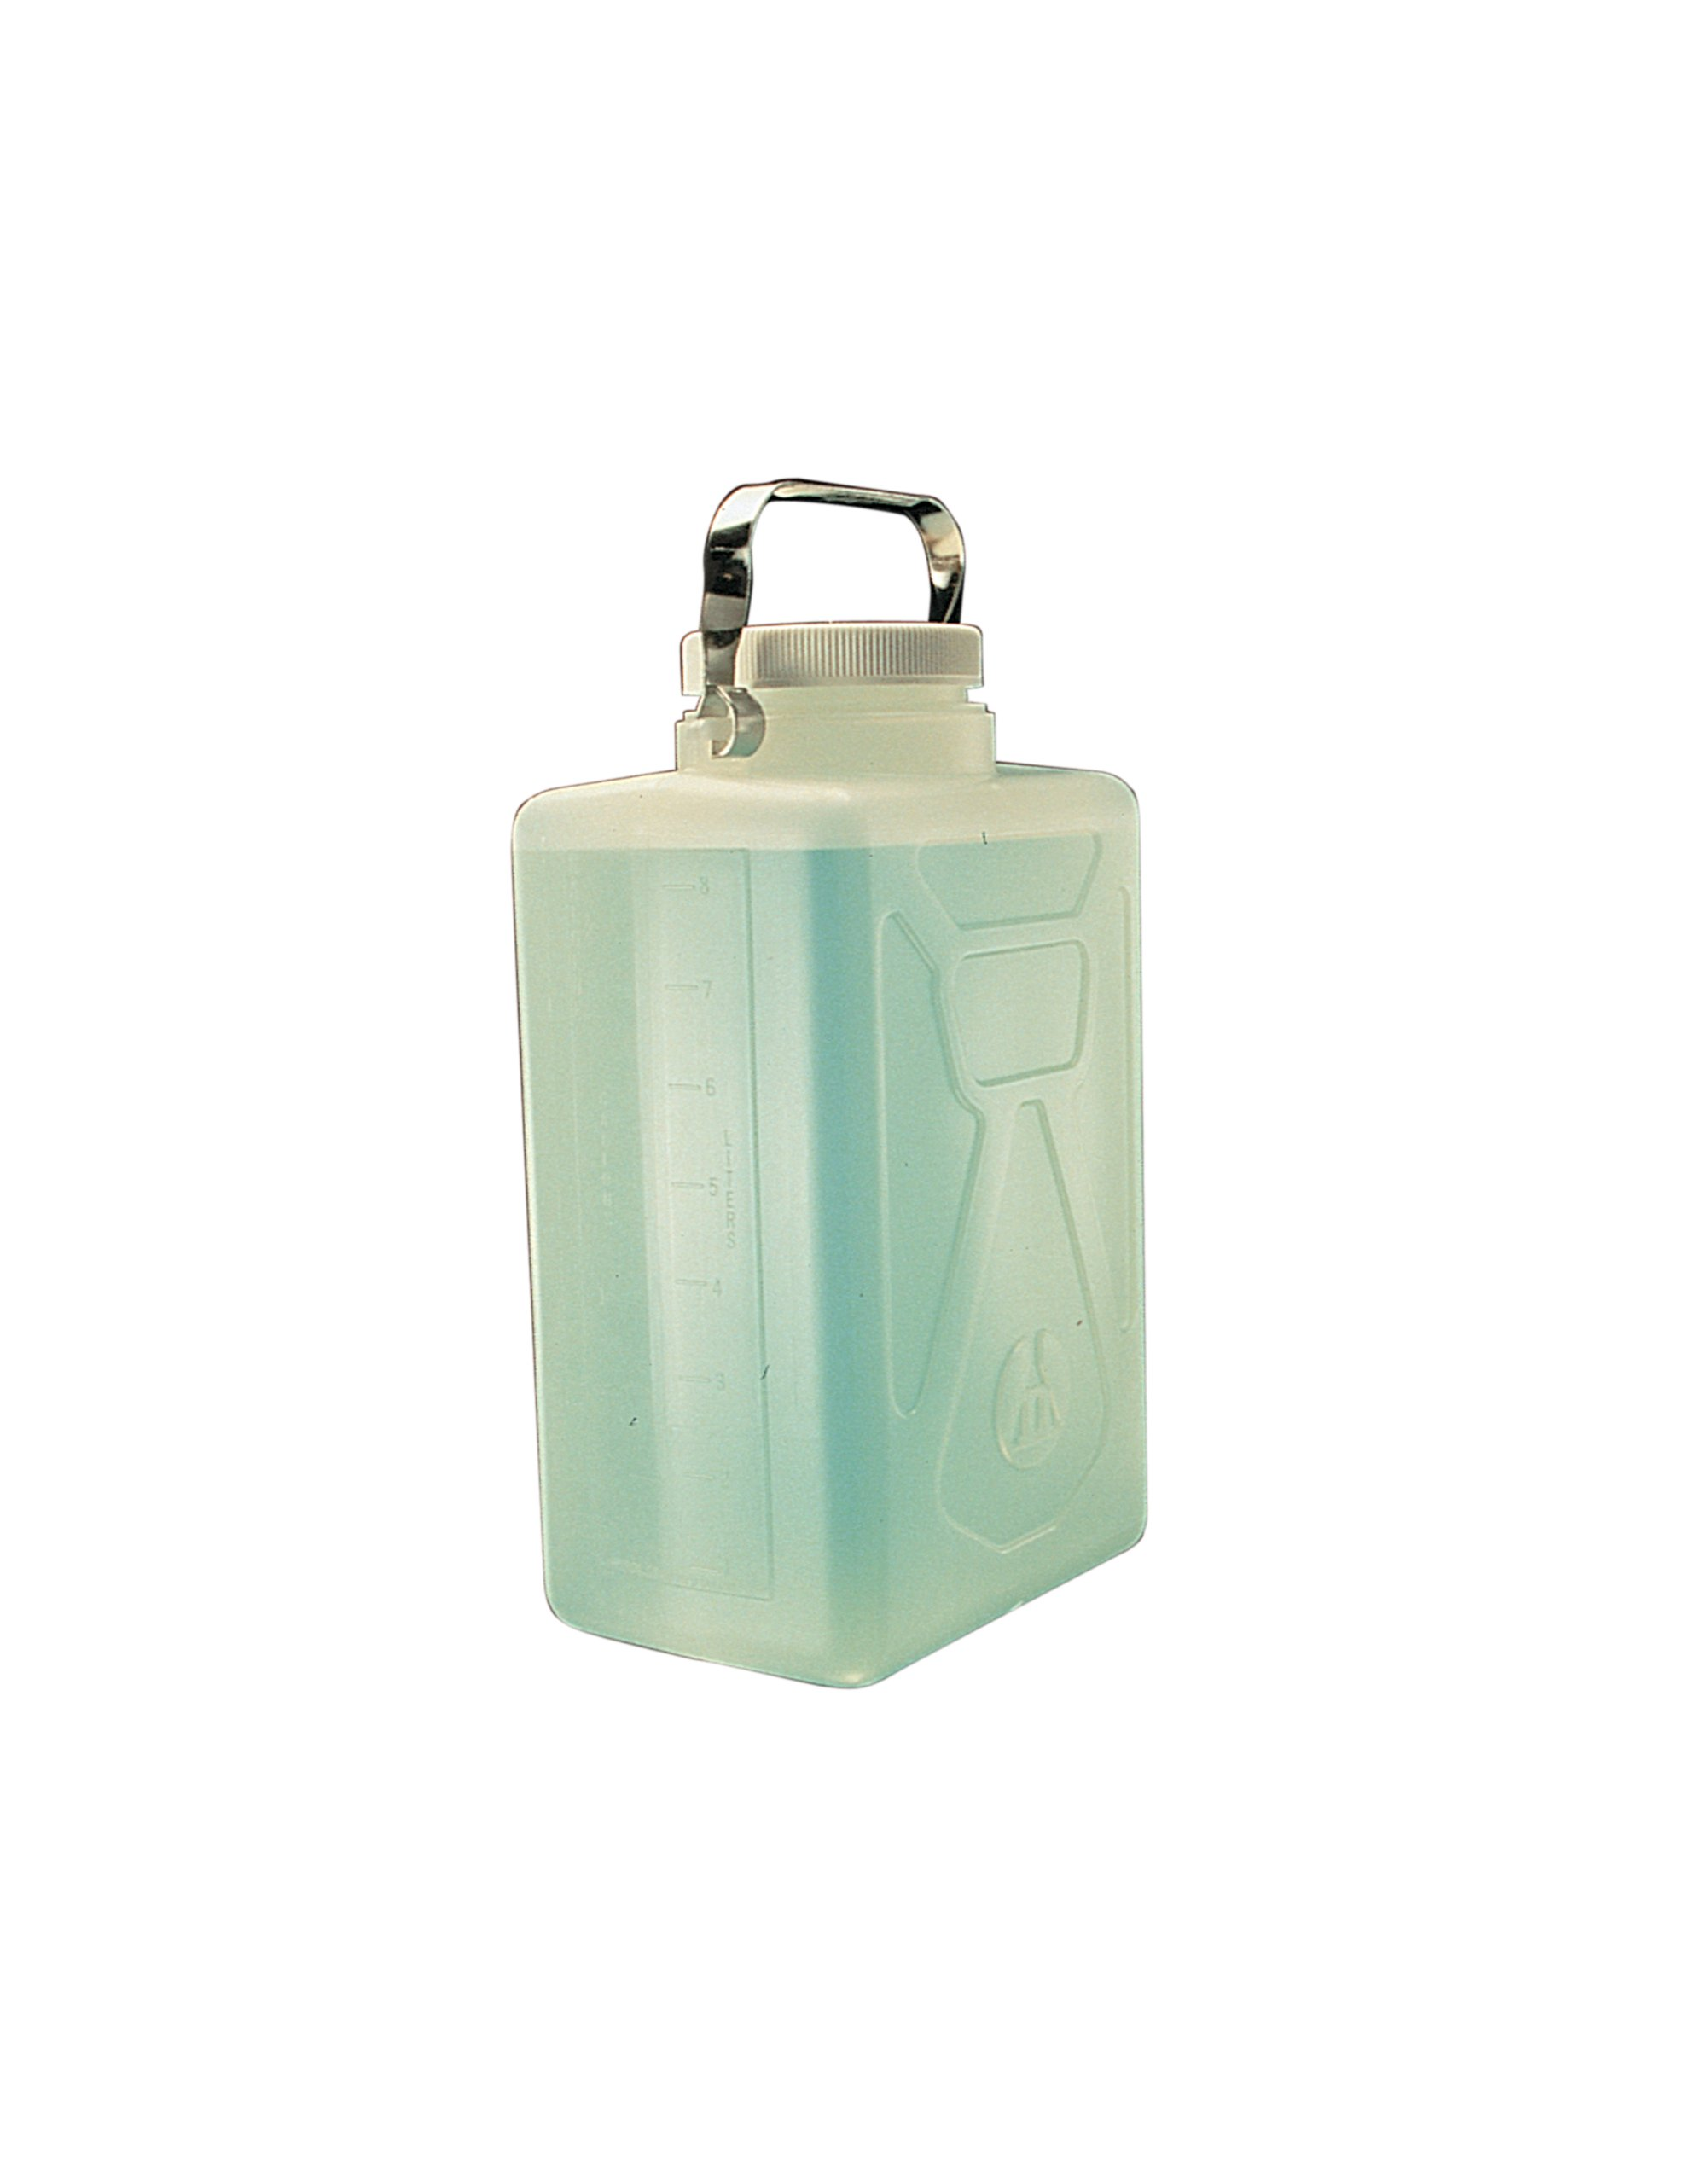 Nalgene Polypropylene Rectangular Carboy with Stainless Steel Handle, 9L